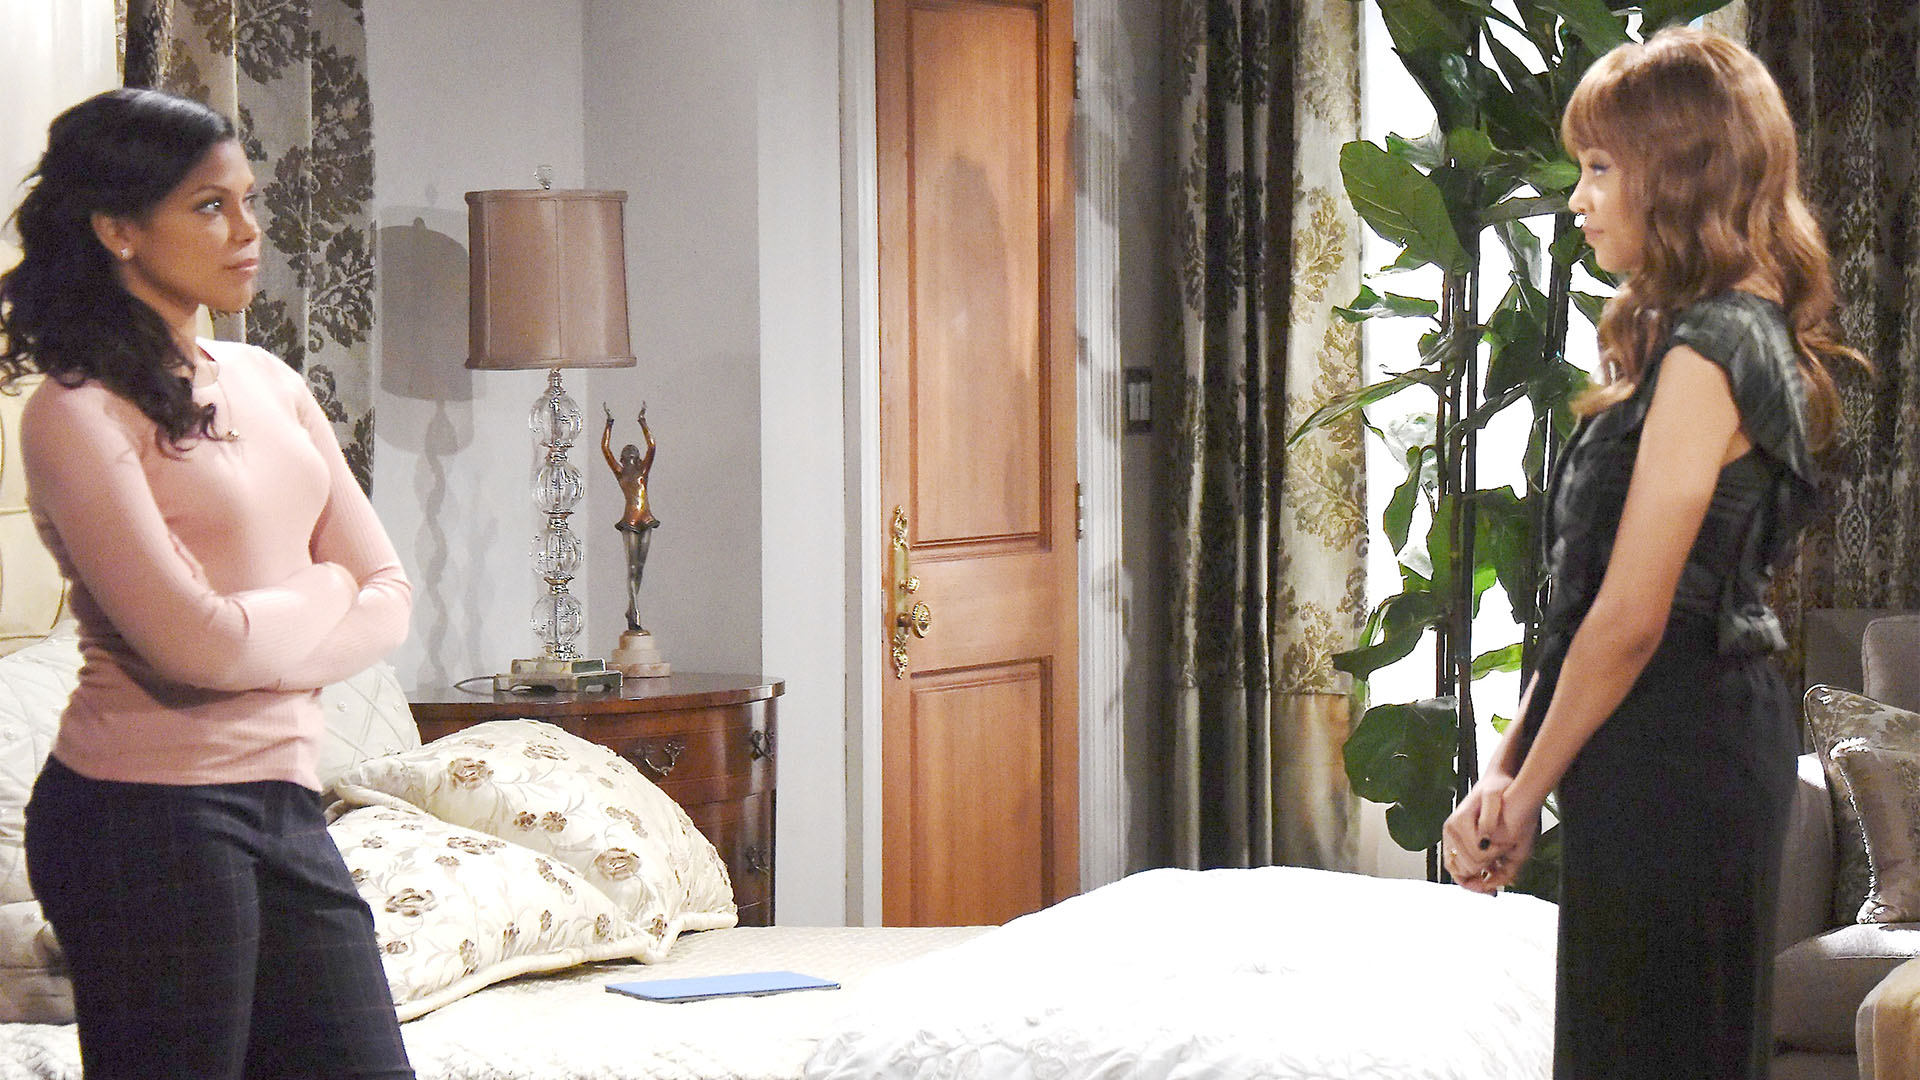 Nicole discloses the intimate moment she witnessed between Brooke and Thorne to Maya.